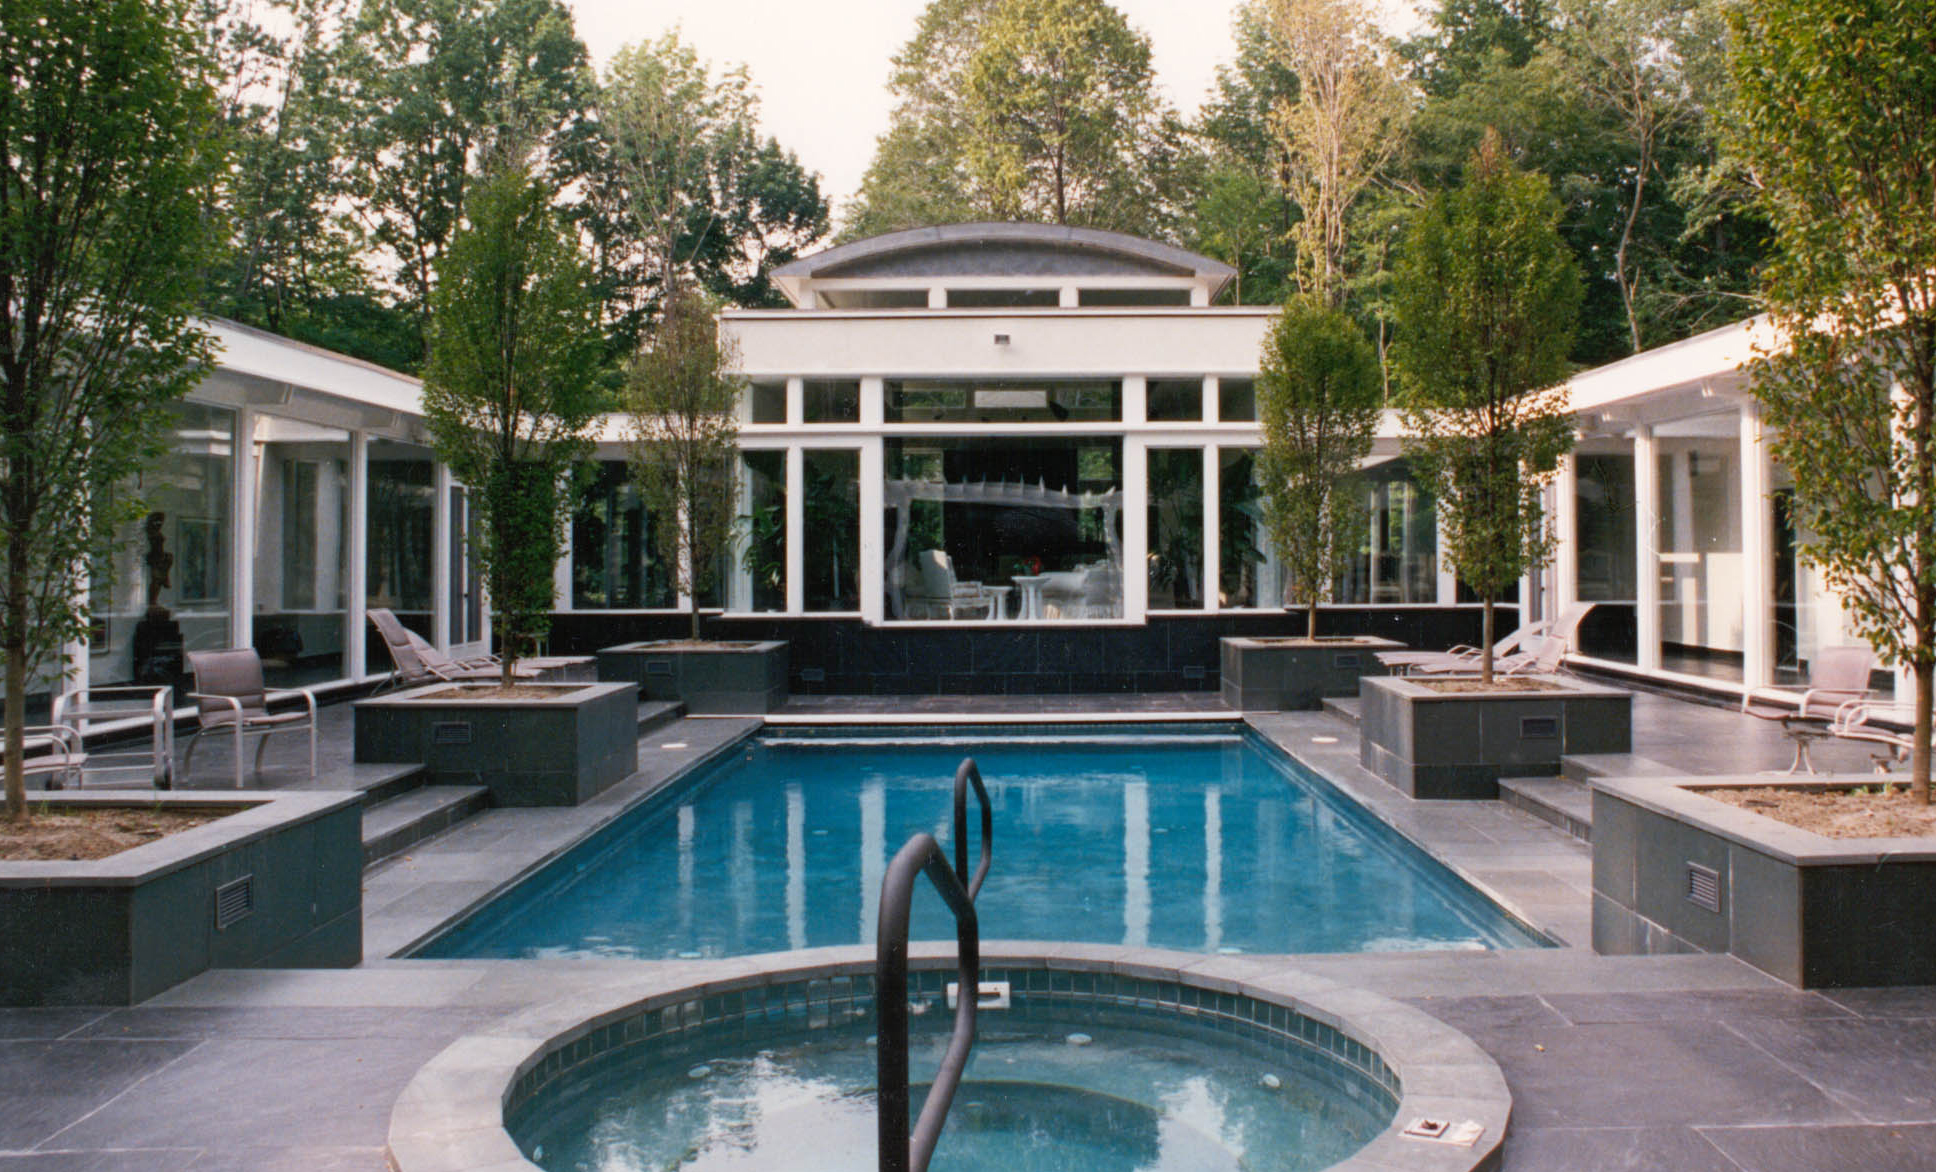 Adelman Residence – 1986 – with Jack Jr